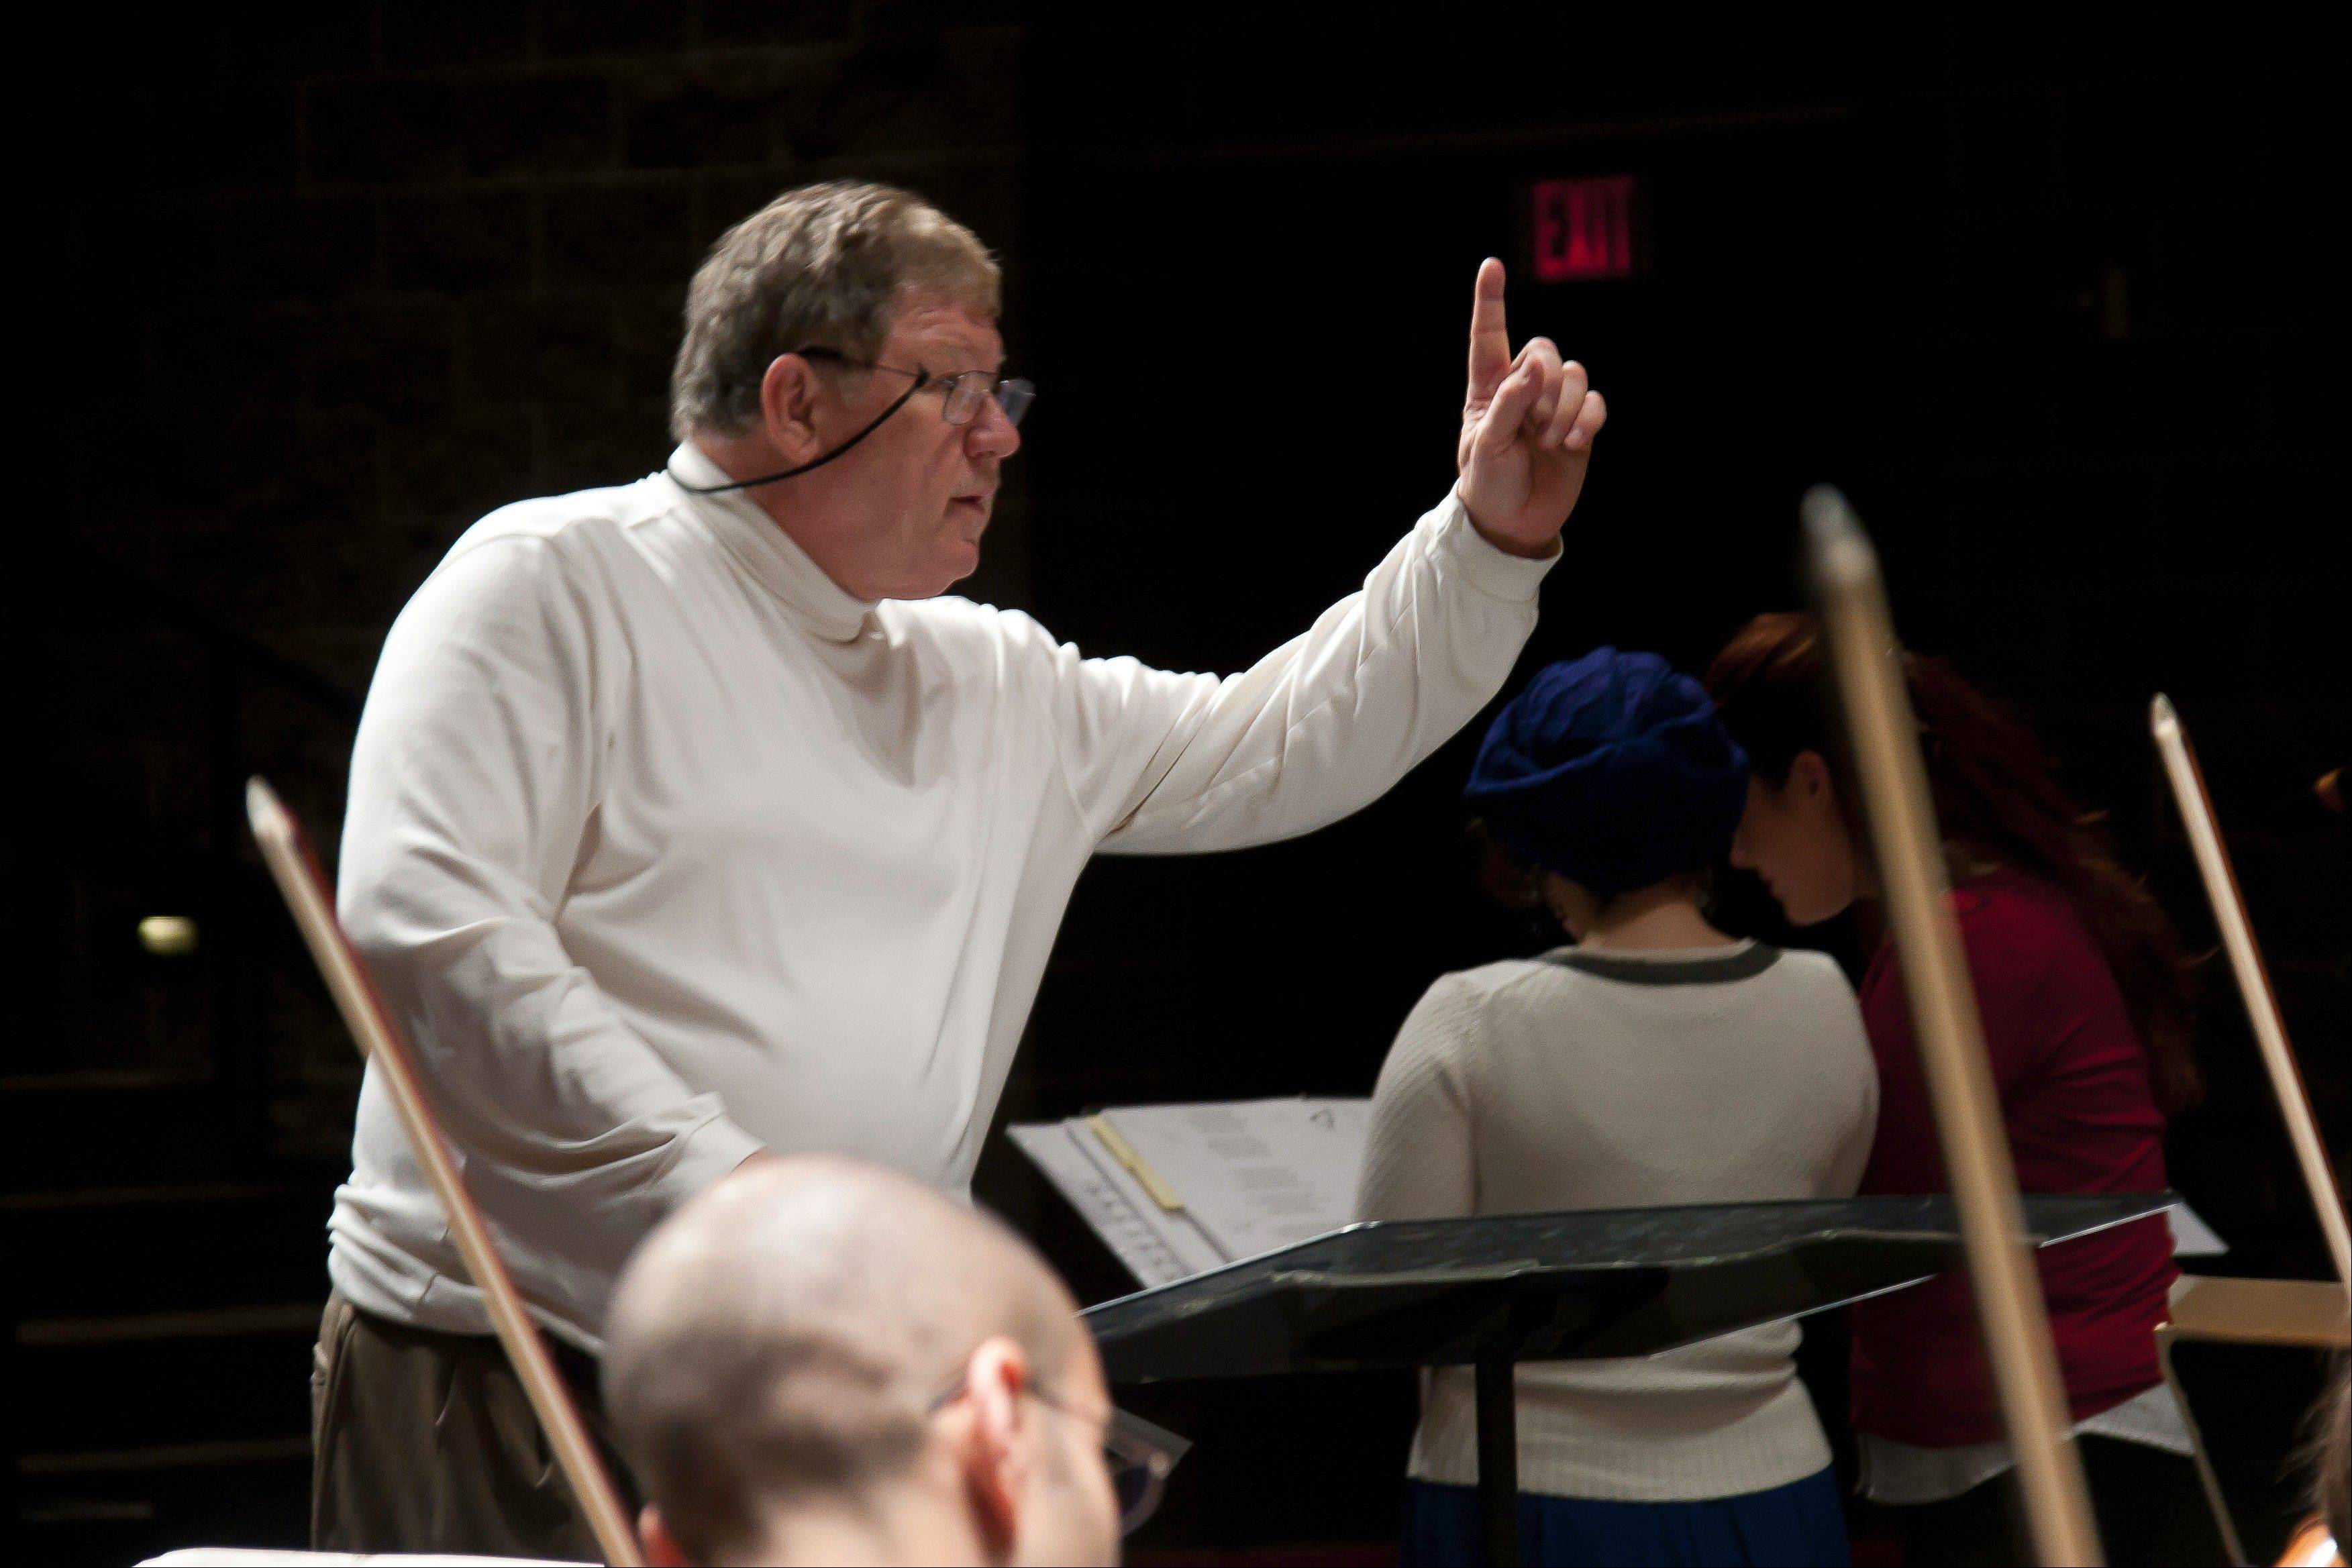 Maestro Verne Schwager conducts the Northwest Festival Orchestra in rehearsal.